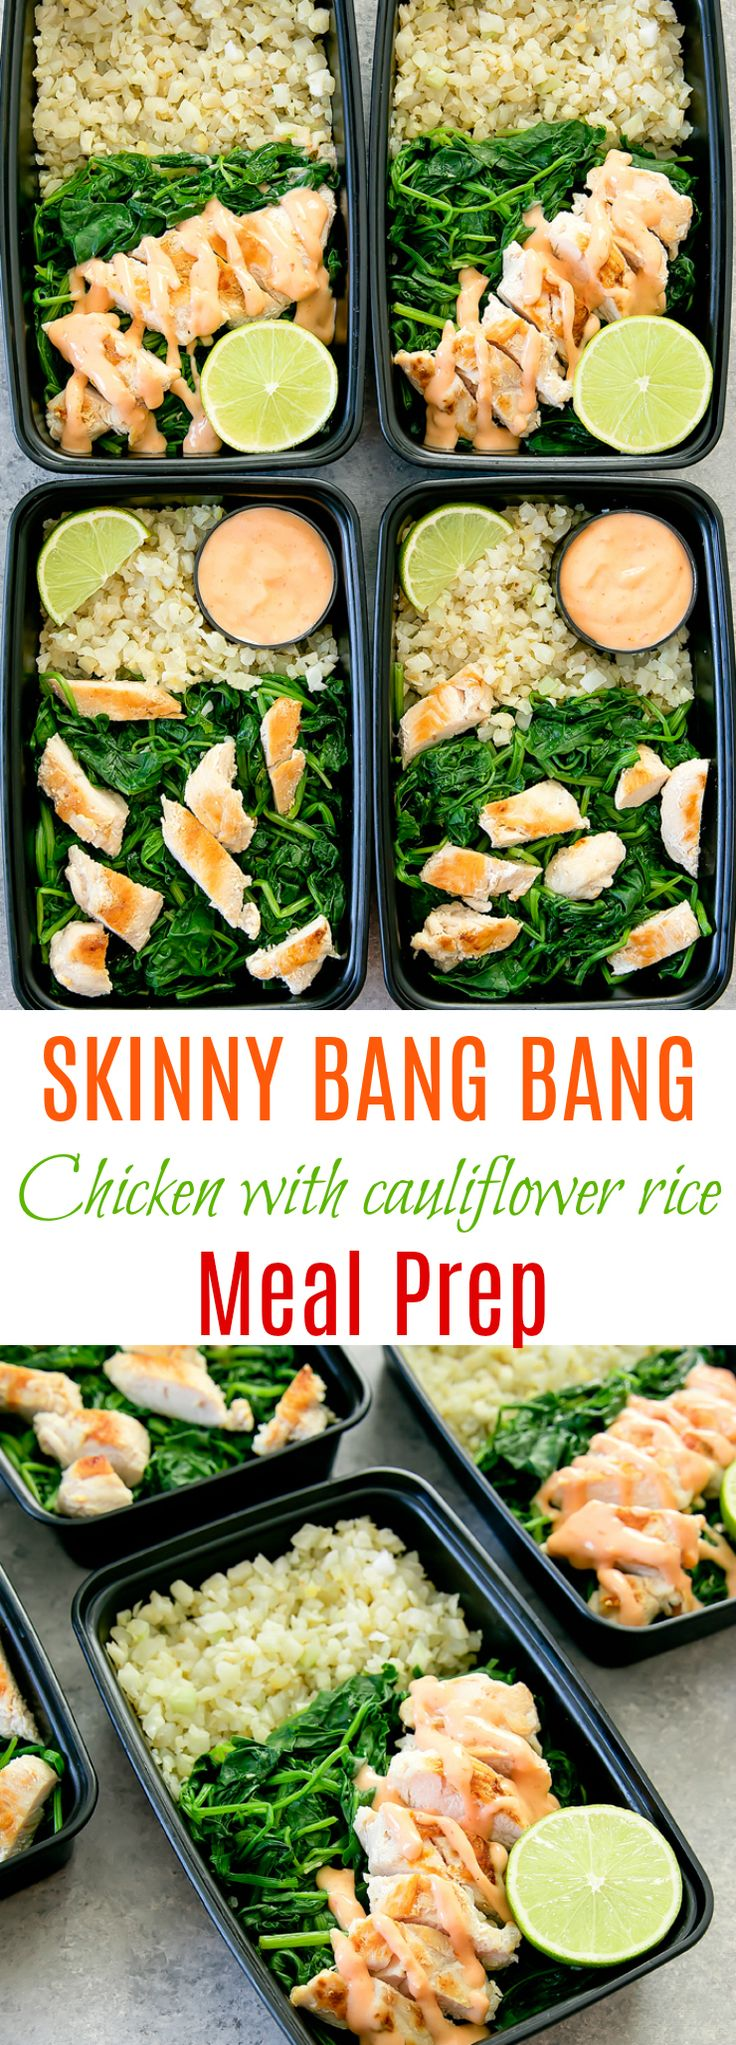 Skinny Bang Bang Chicken with Cauliflower Rice Weekly Meal Prep. An easy, low carb, and flavorful meal prep dish.